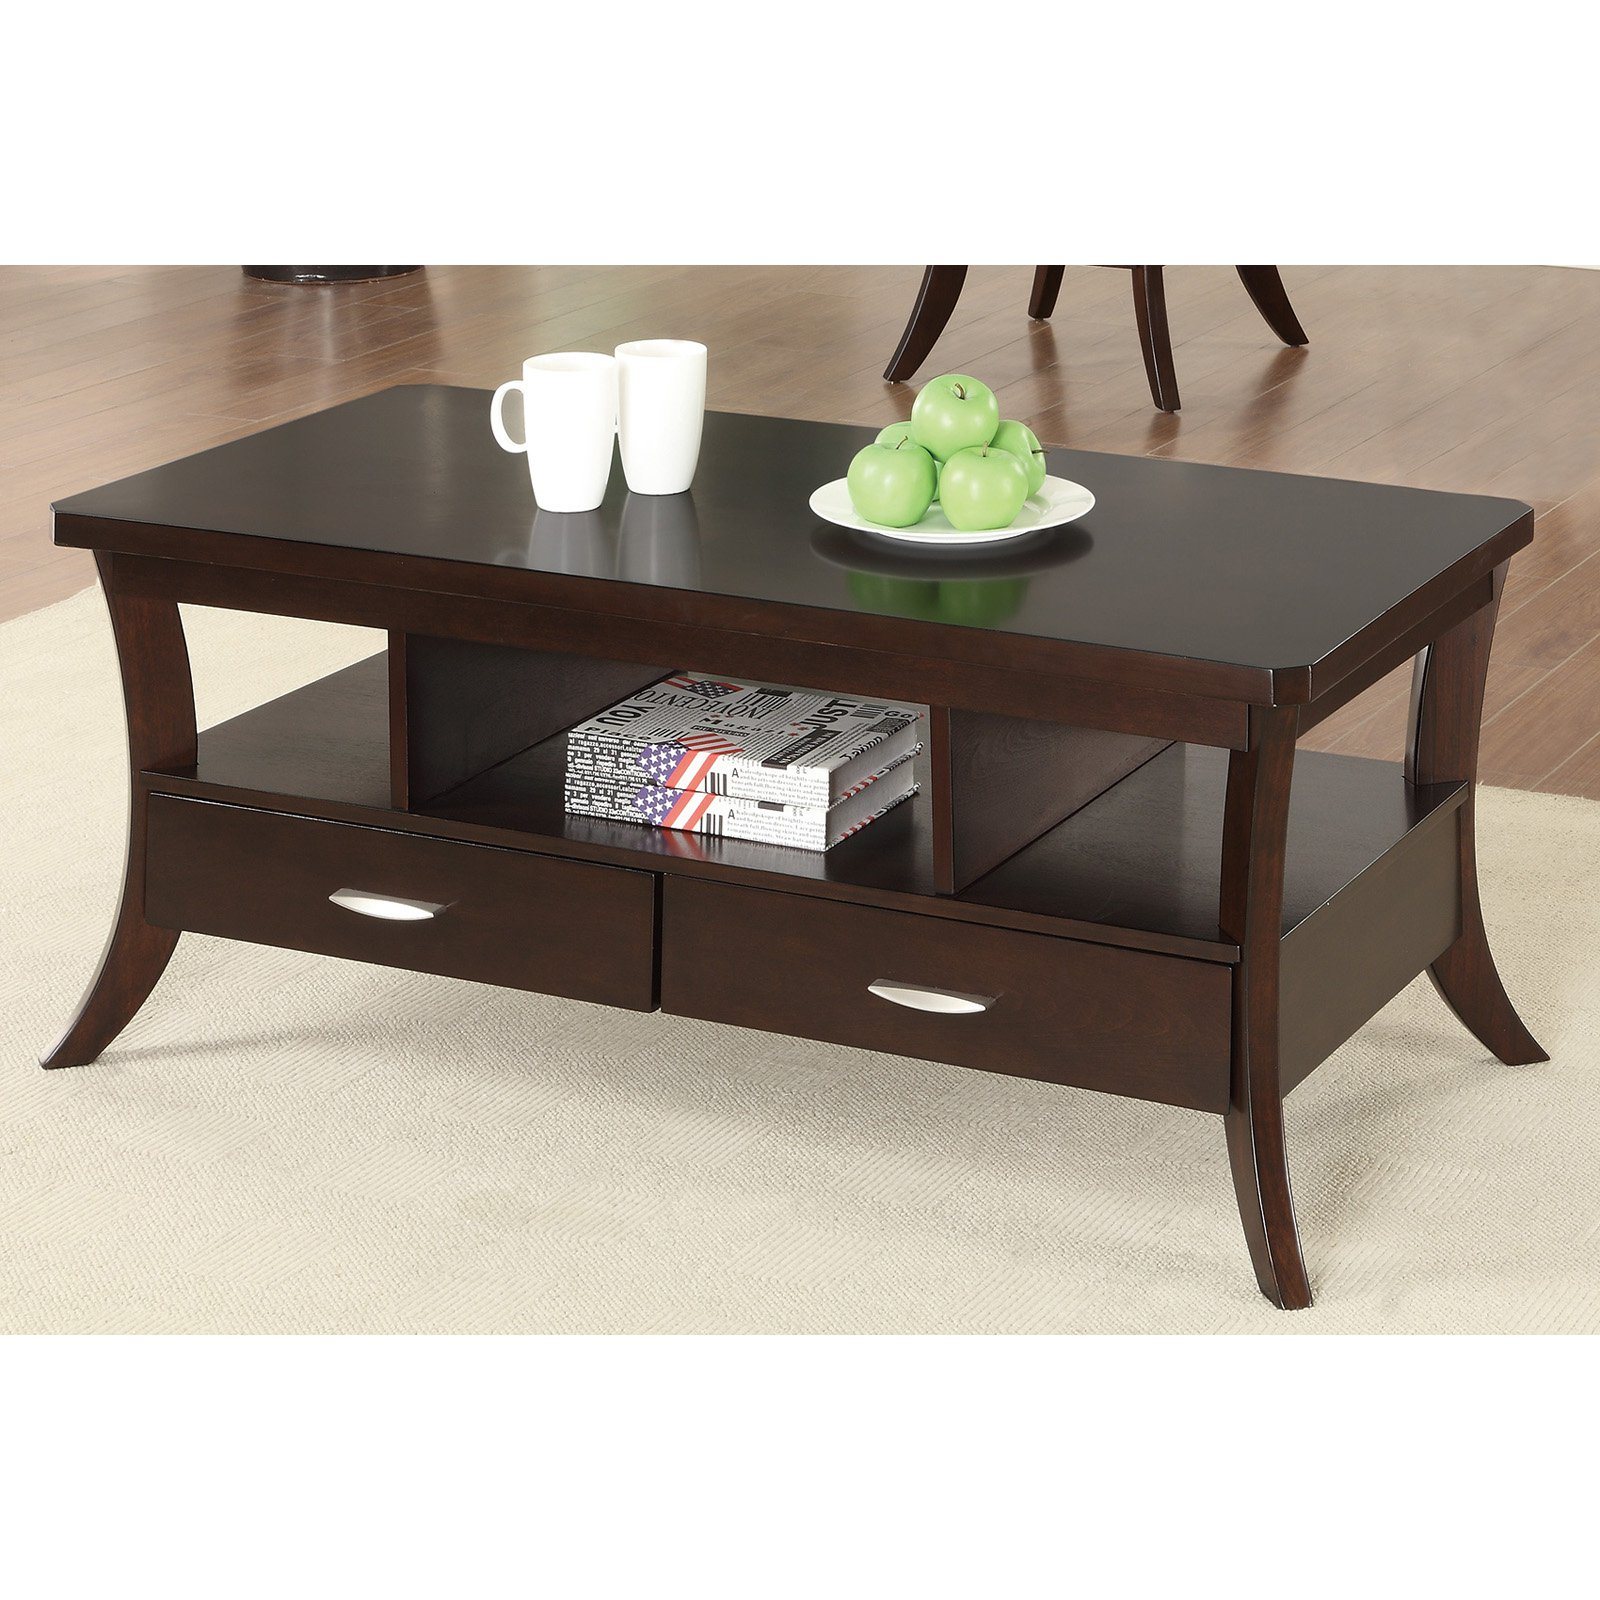 Coaster Furniture Wood Coffee Table   Espresso